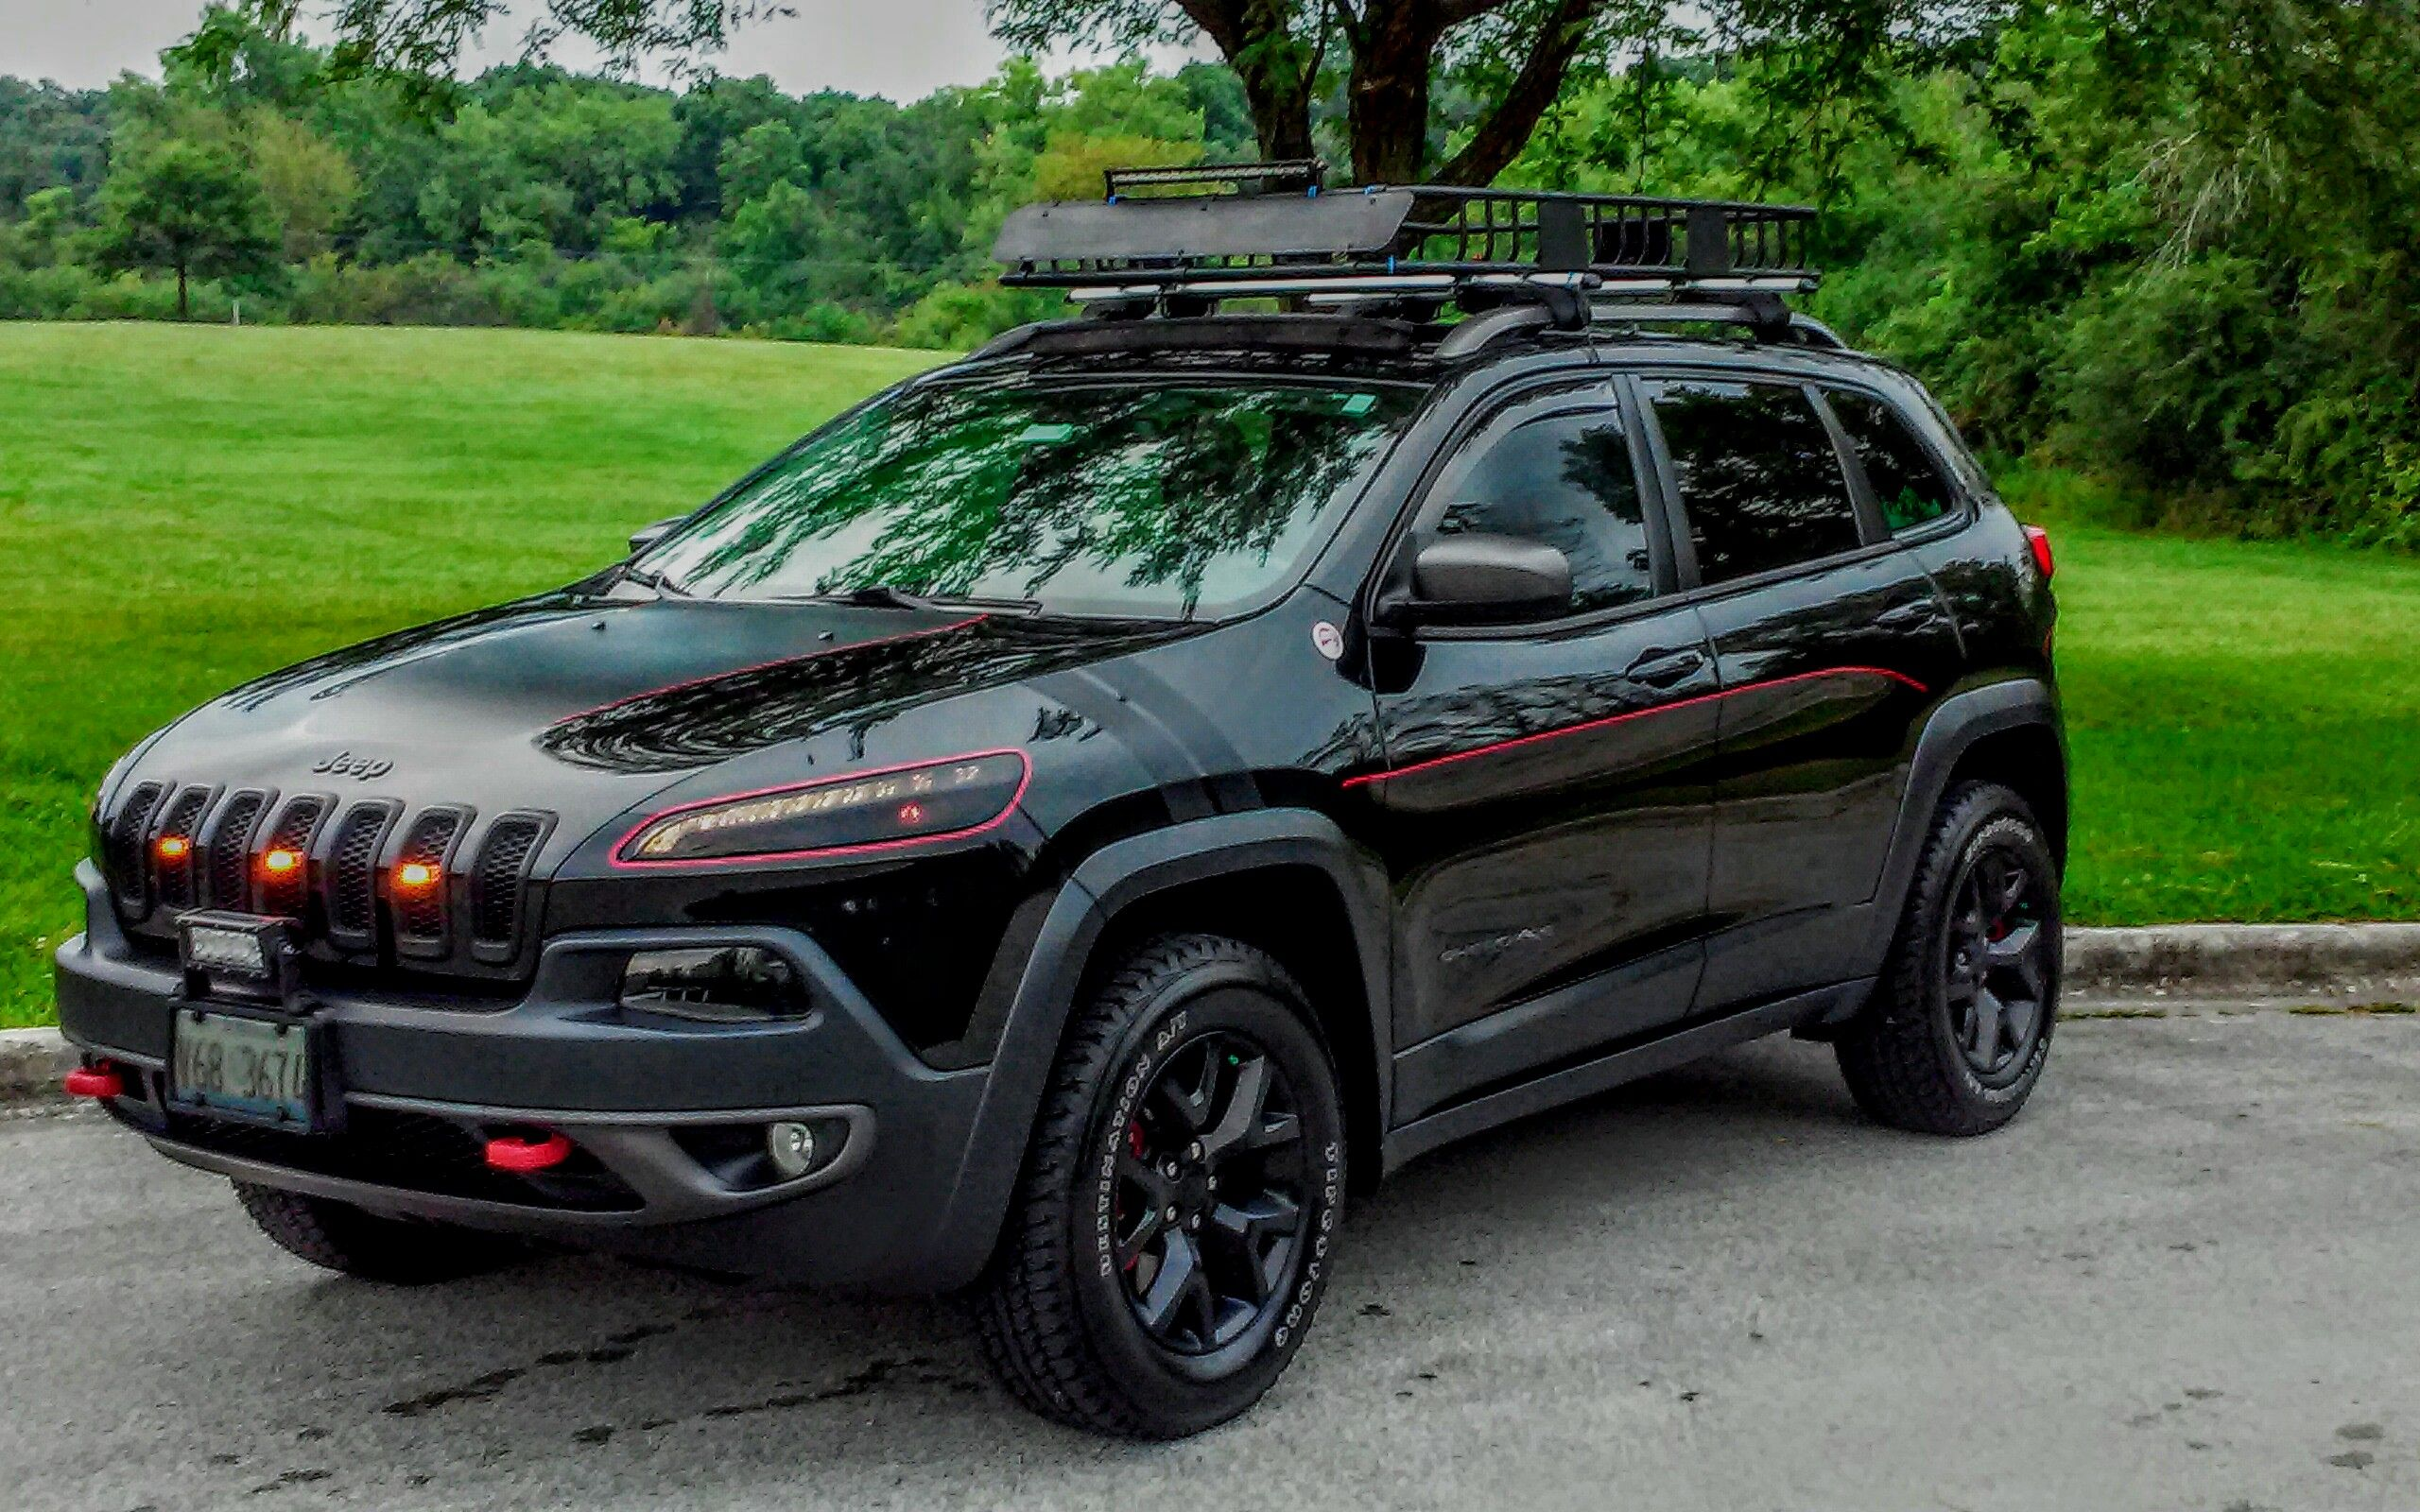 Pin By Ronald Mrencso On Ron M Jeep Trailhawk Jeep Cherokee Trailhawk 2014 Jeep Cherokee Trailhawk